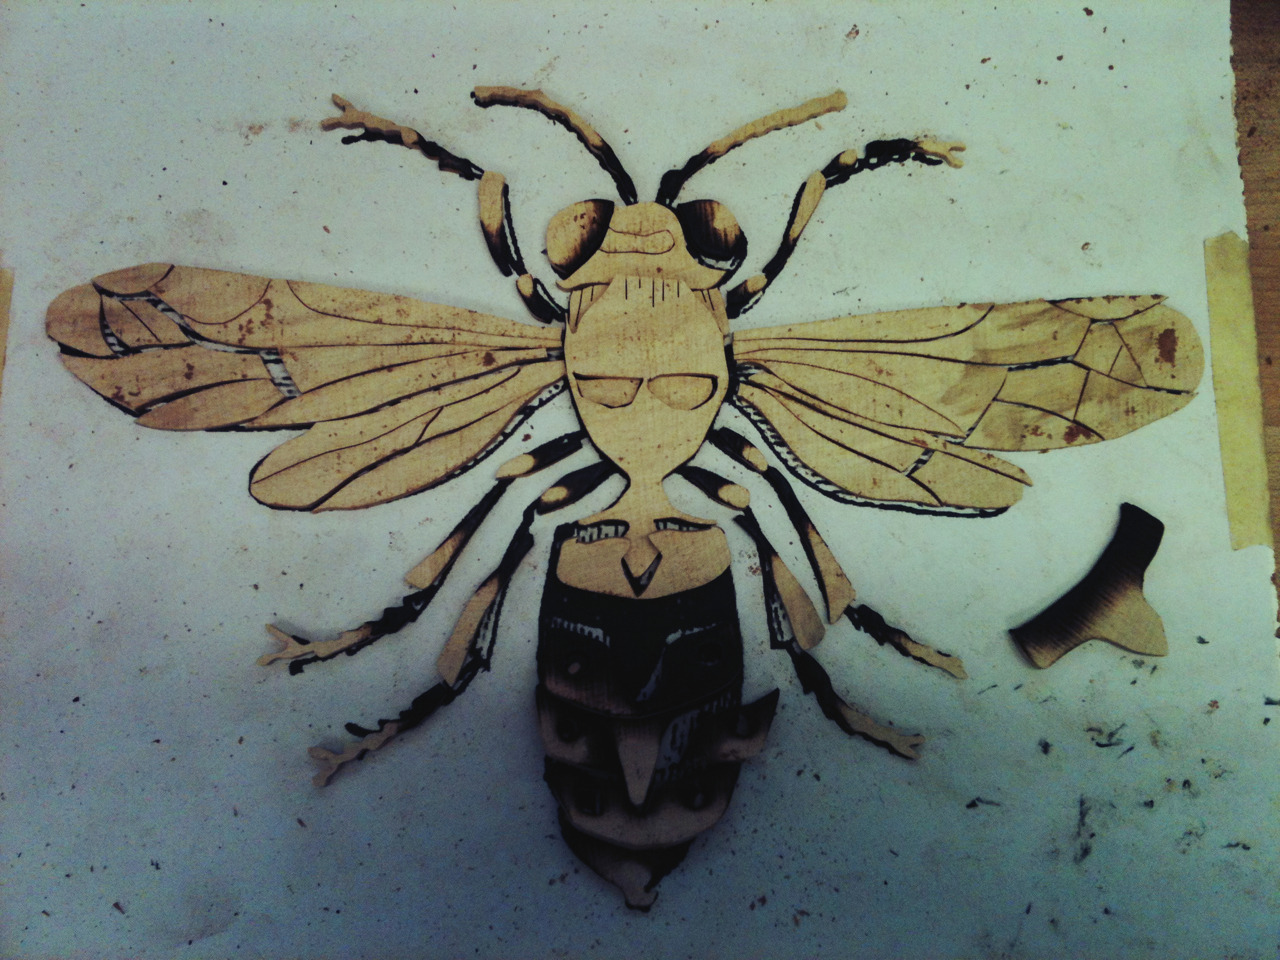 SIERRA WOODCRAFT - wasp Check this guy out! This may be my favorite marquetry design we've done yet. I made four of these guys, and the colors will be all mixed and matched on the final product. The one in this photo is reclaimed maple from the Sierra foothills of California.